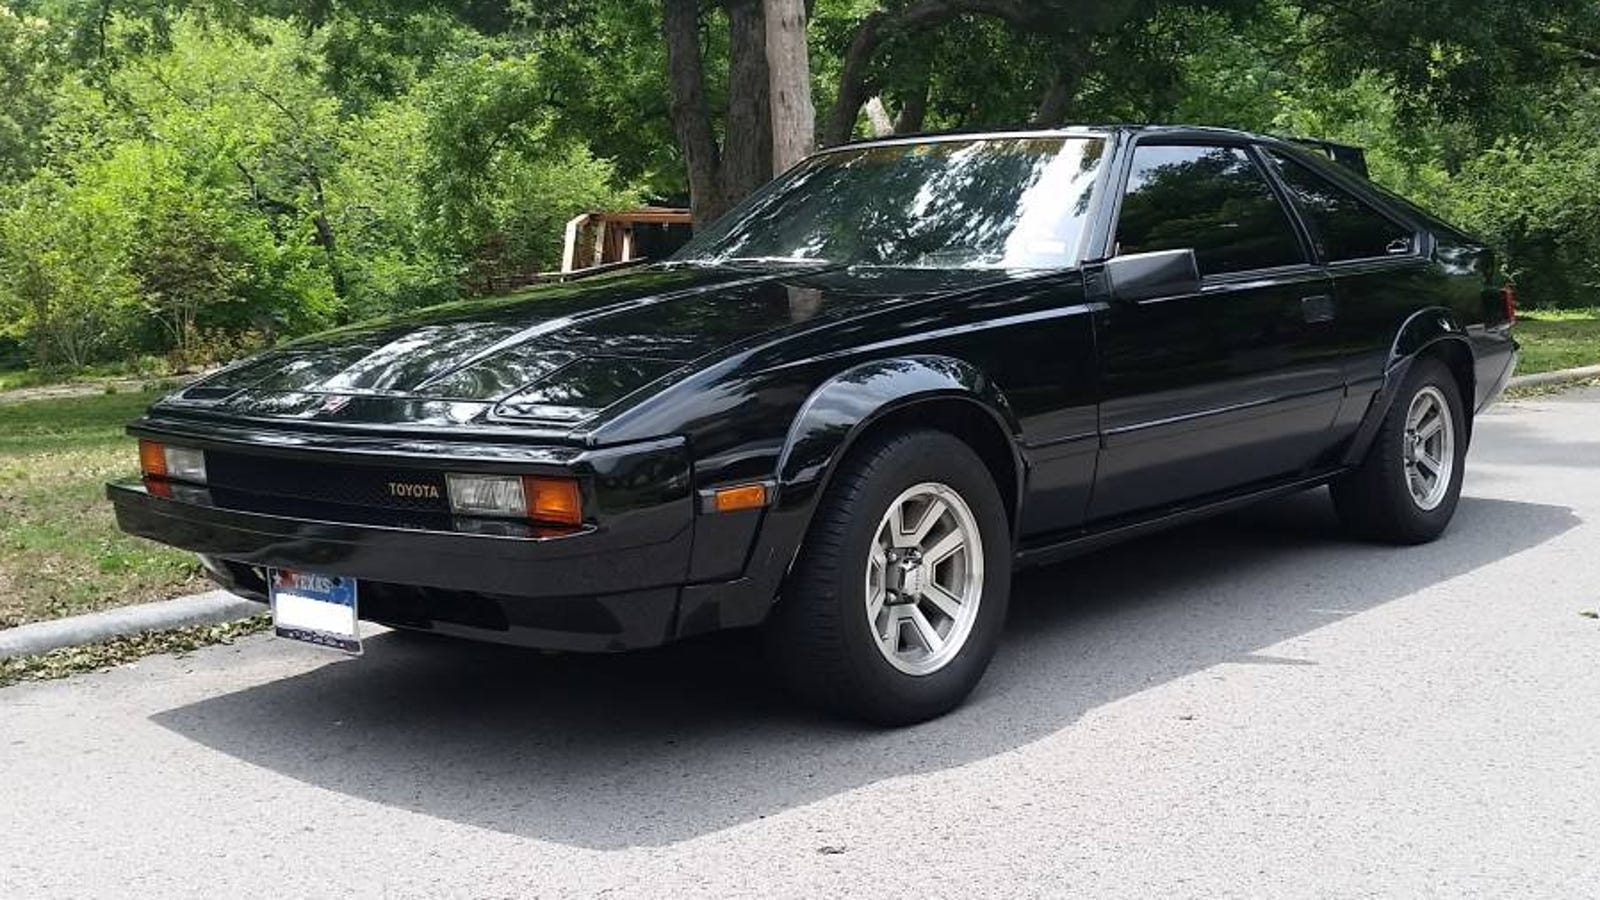 Could This 1983 Toyota Celica Supra Be Worth $5,500?